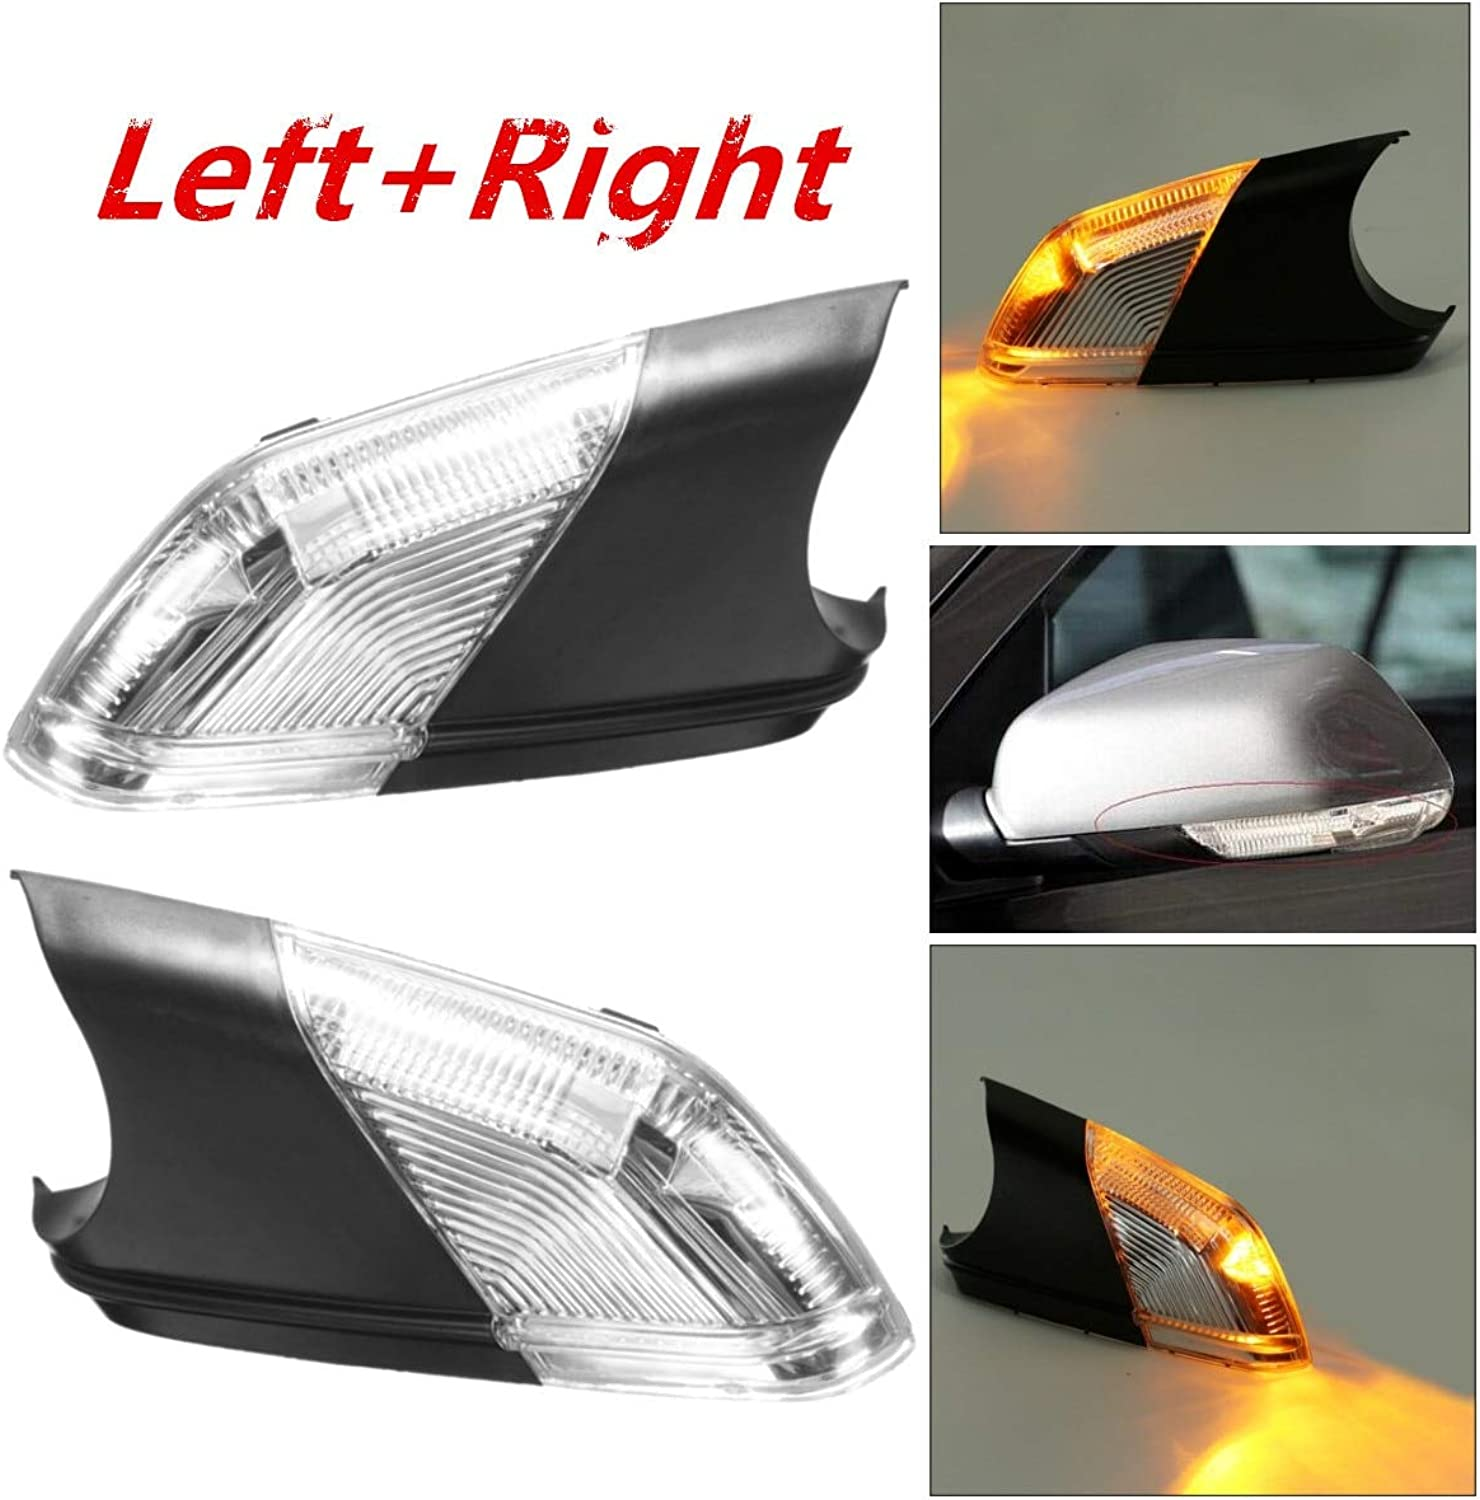 Gift4Car  Left+Right Side Wing Car Styling Rearview Mirror Turn Signal Light Indicator Led Lamps Bar Lighting for 0509 for VW Polo mk4 FL